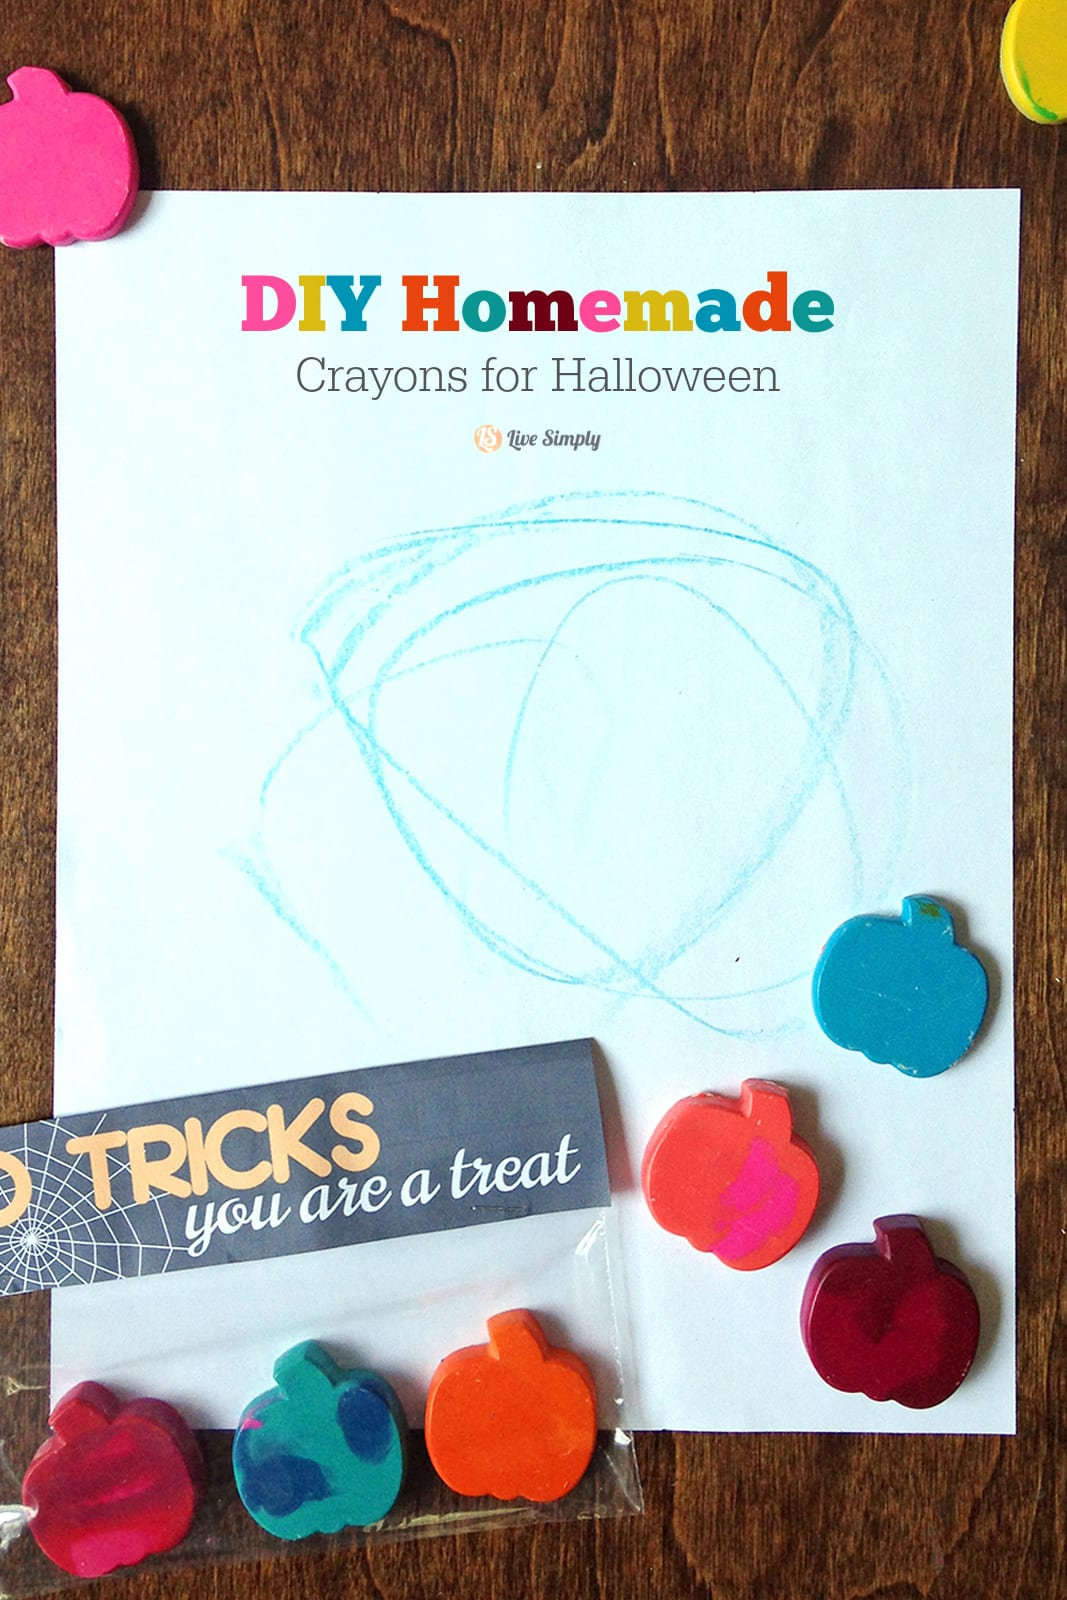 DIY Homemade Crayons for Halloween + Printable